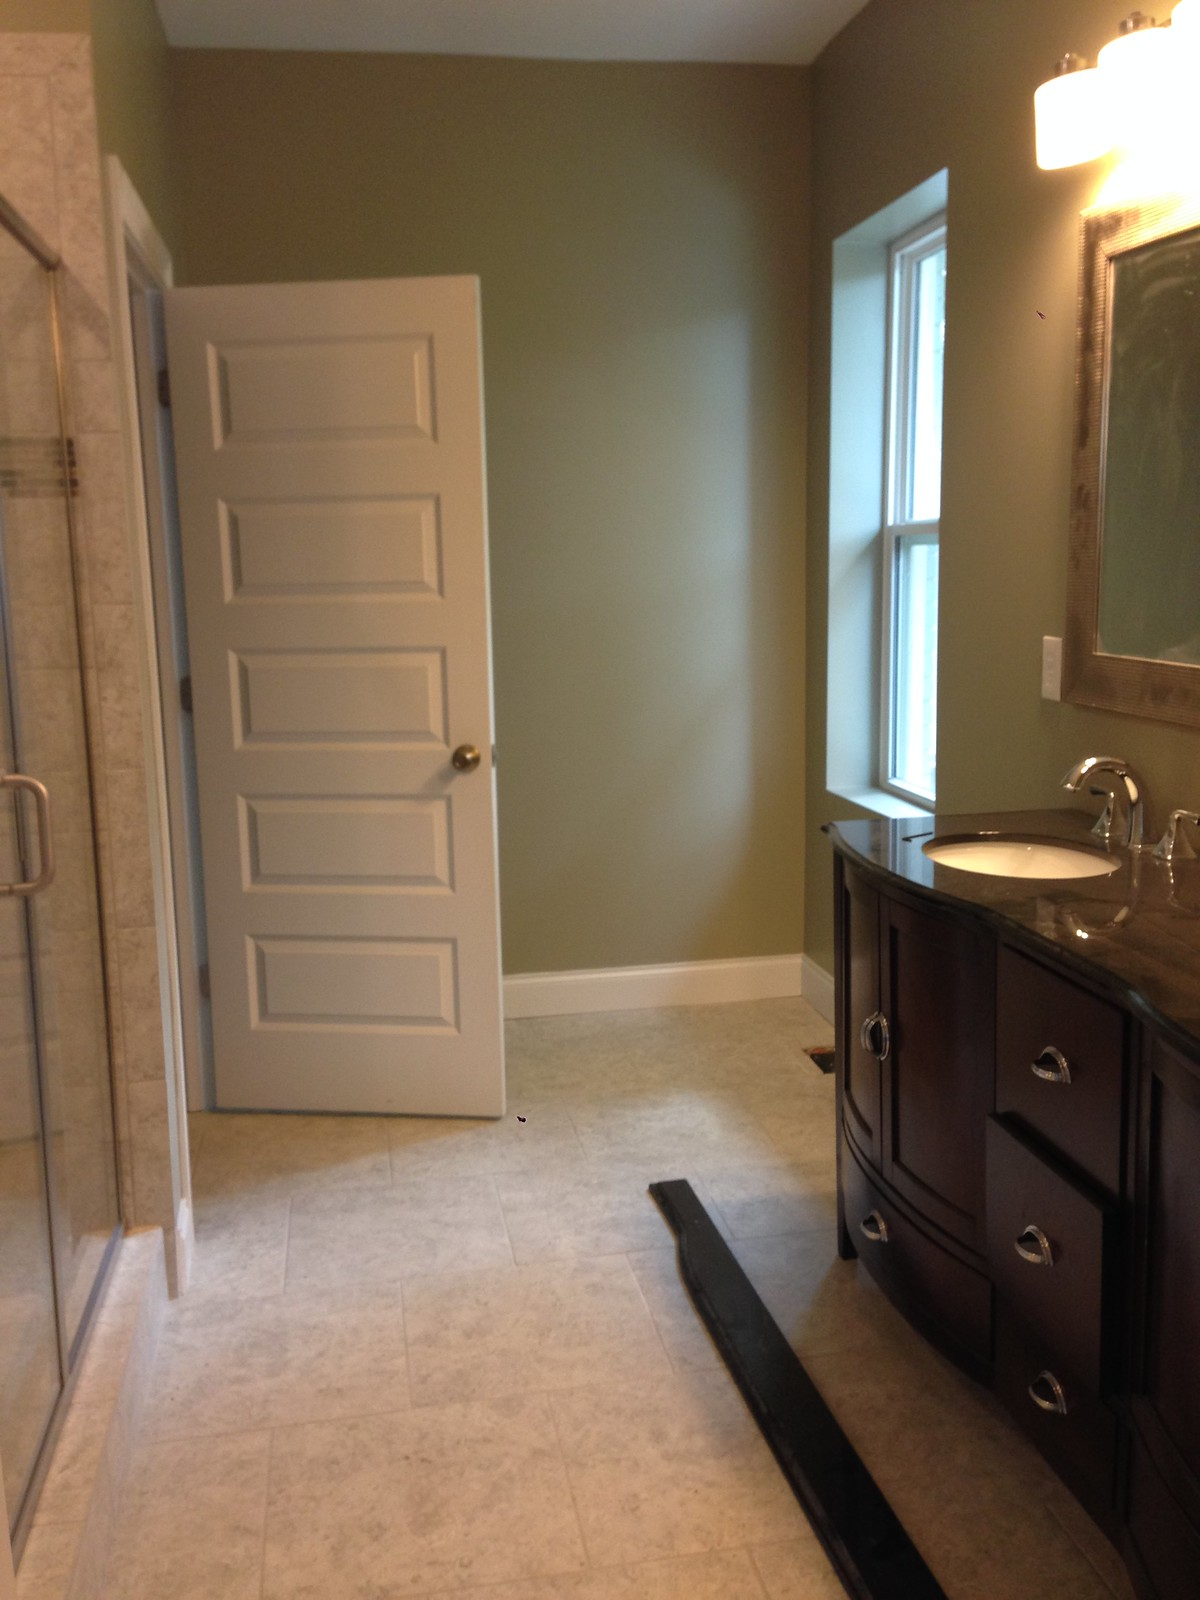 Master Bathroom - The open door is the toilet